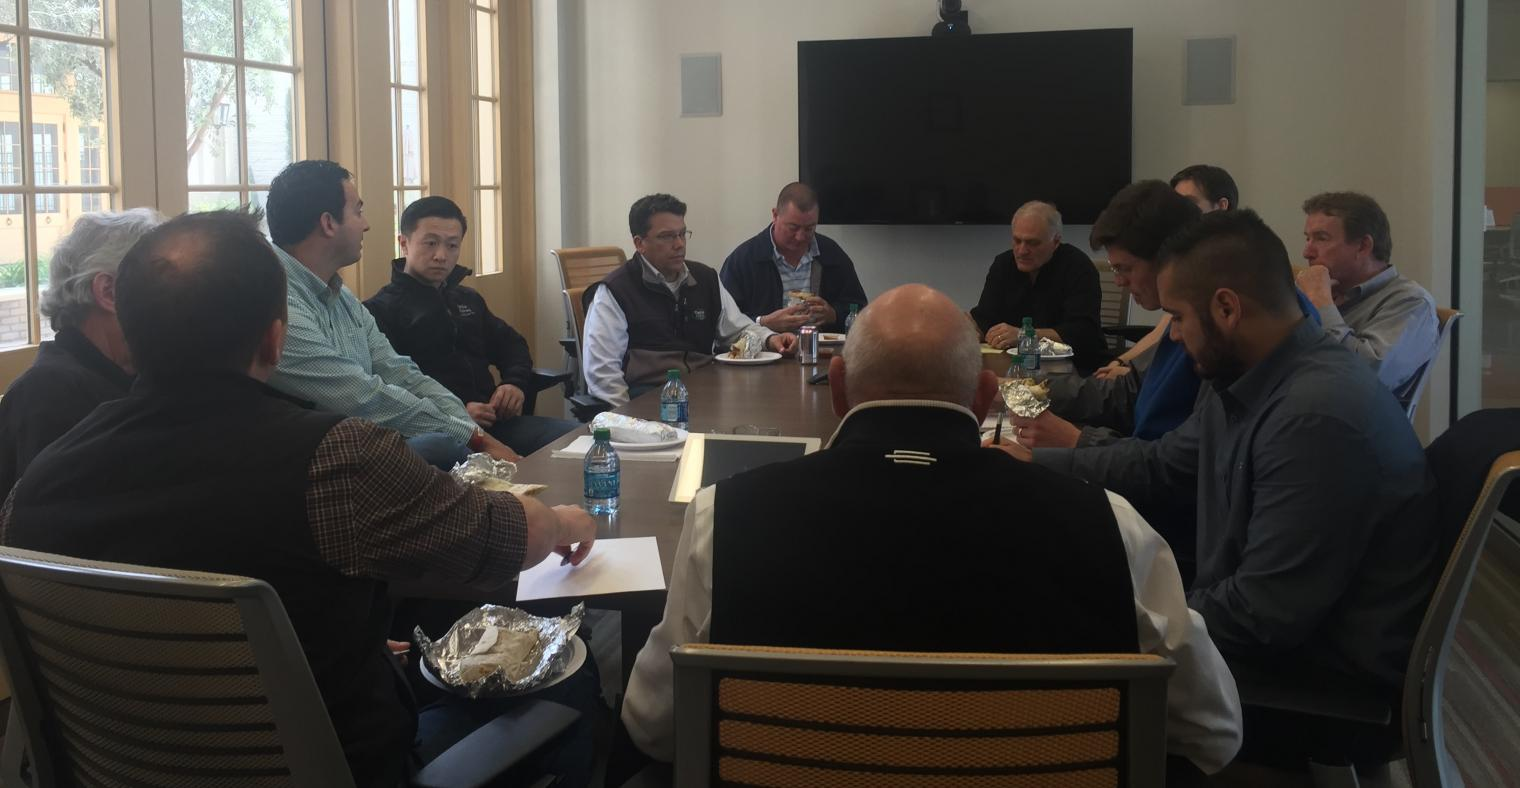 Taylor Farm team members spoke with the WGCIT resident startup companies about a variety of topics relating to agriculture and technology, while enjoying burritos for lunch.